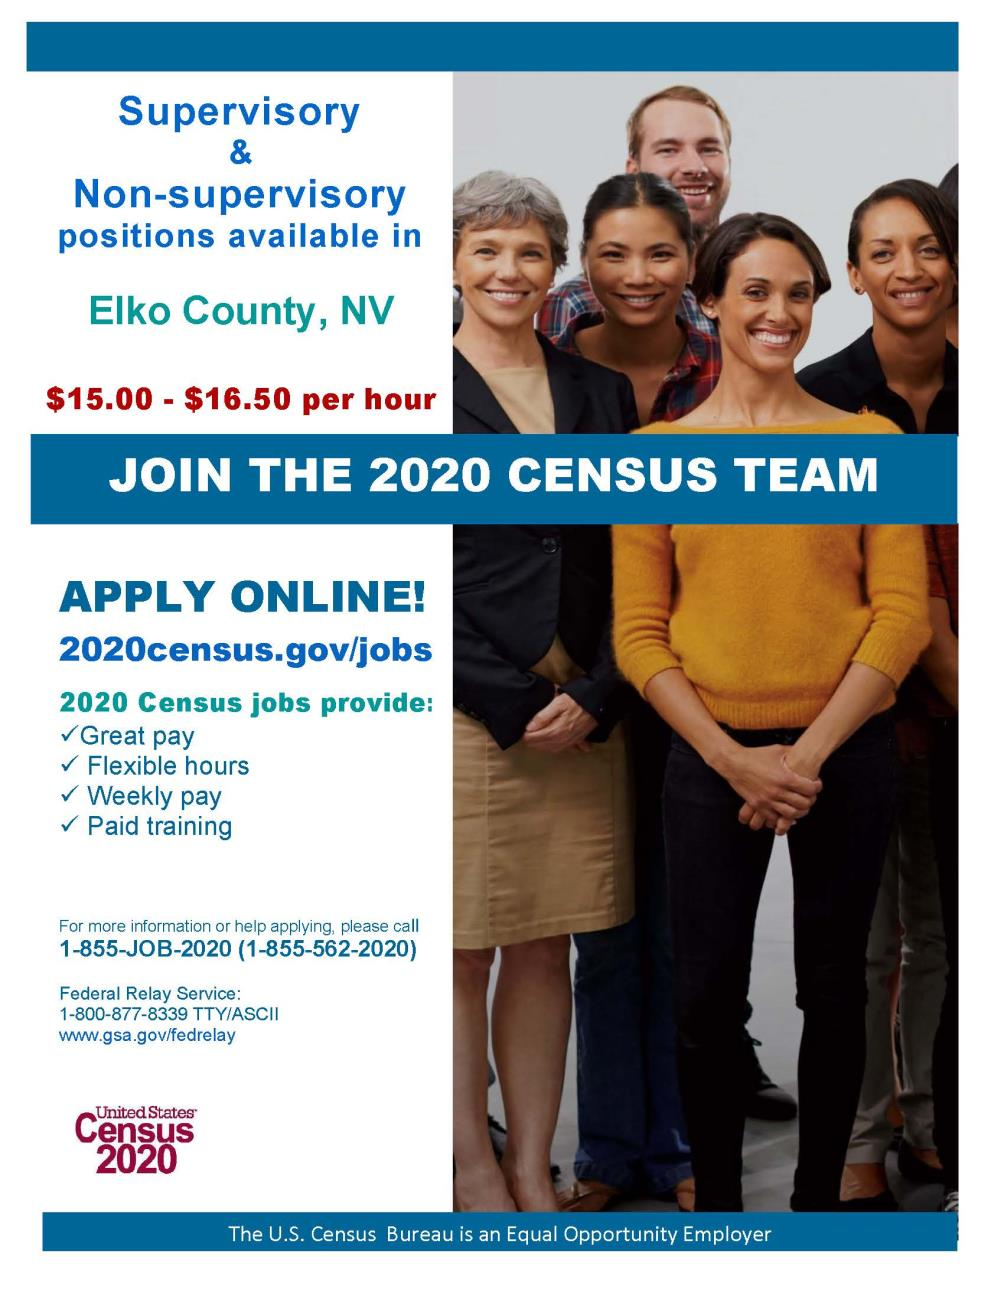 Be Part of the 2020 Census Team